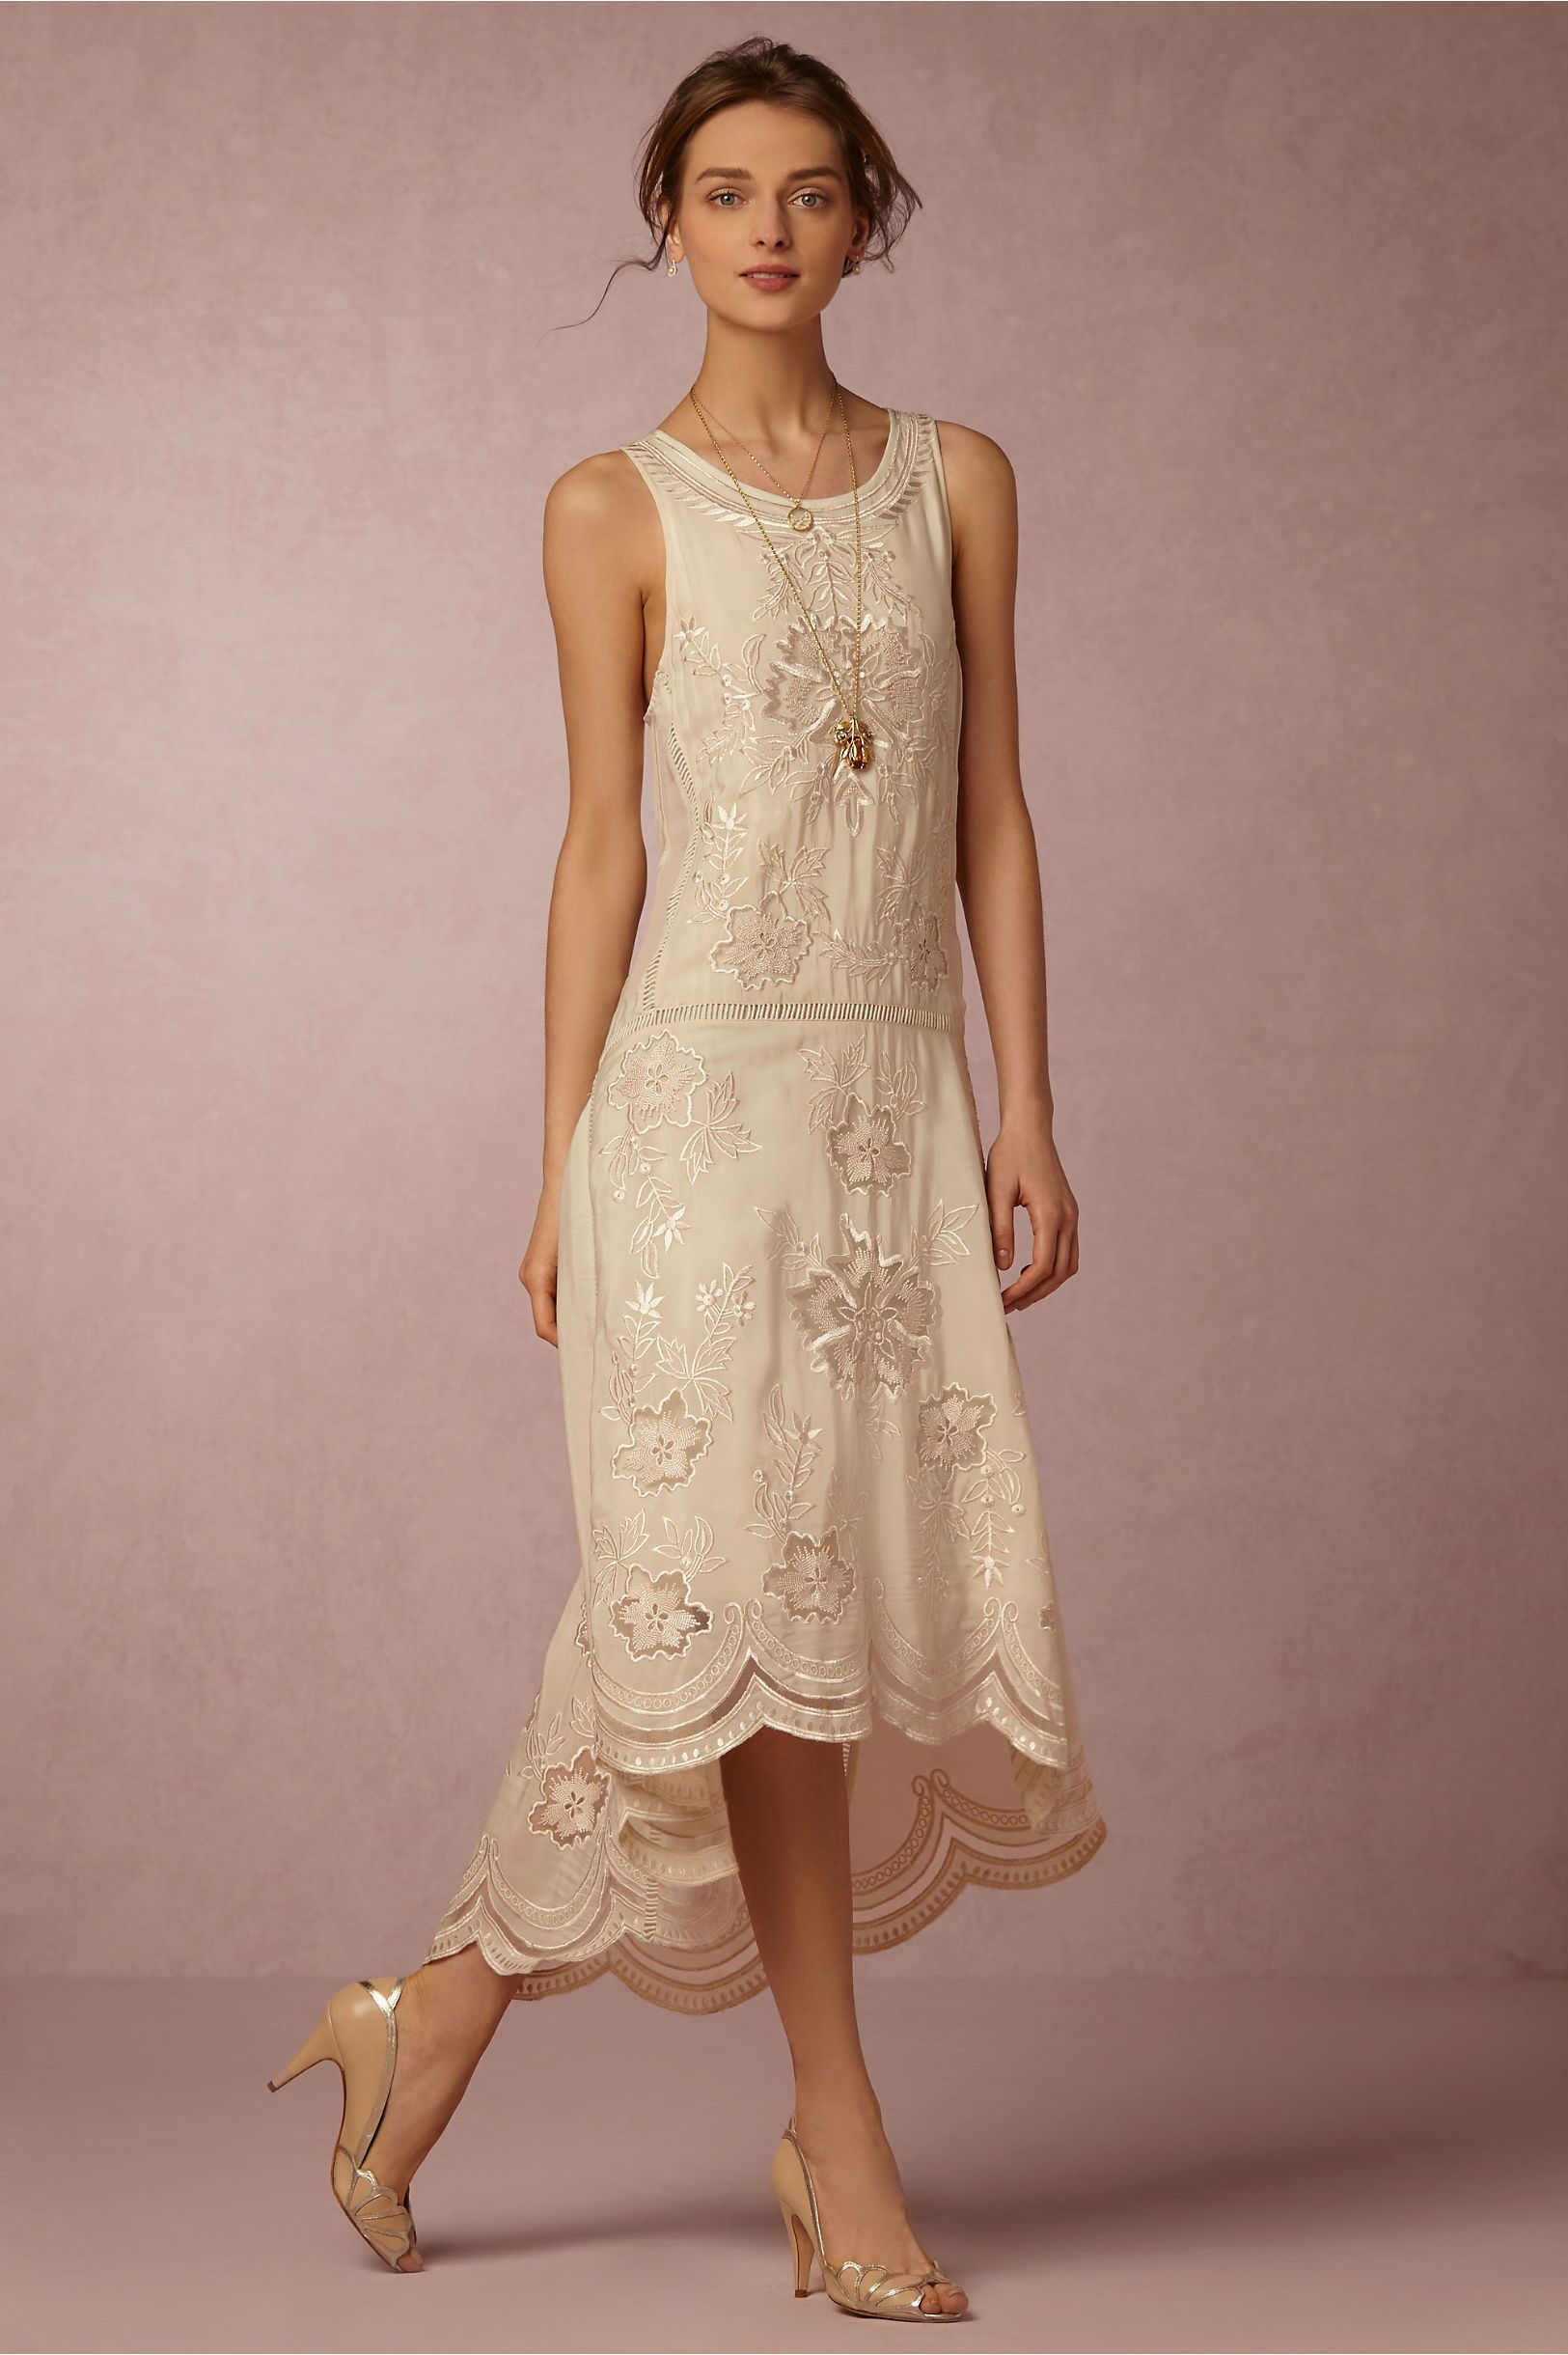 BHLDN Cora Dress in Bride Reception Dresses at BHLDN | [ little ...